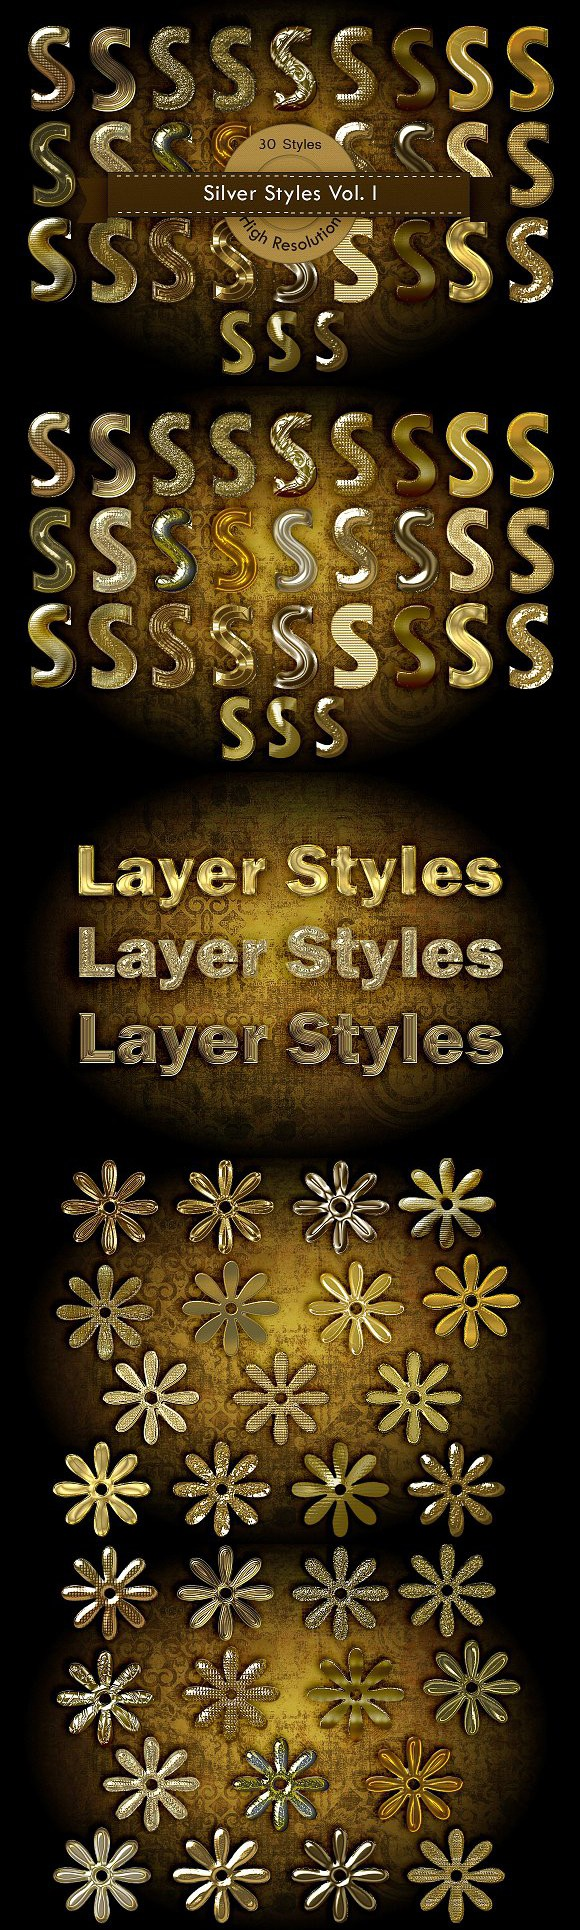 Gold Photoshop Layer Styles. Layer Styles